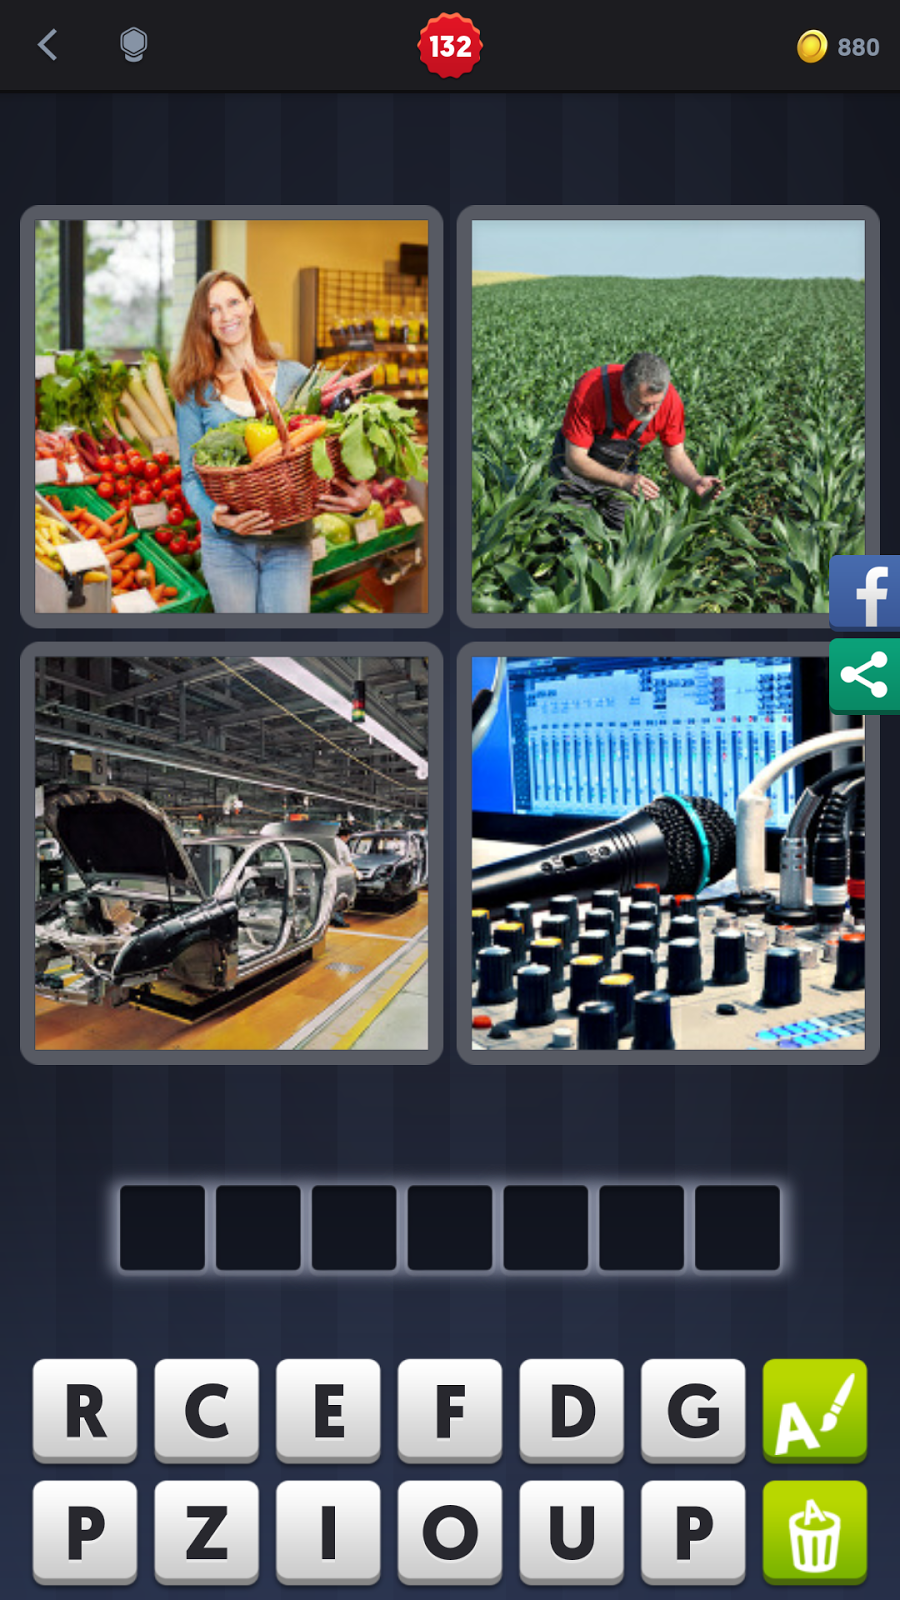 4 Pics 1 Word Answers Solutions Level 132 Produce